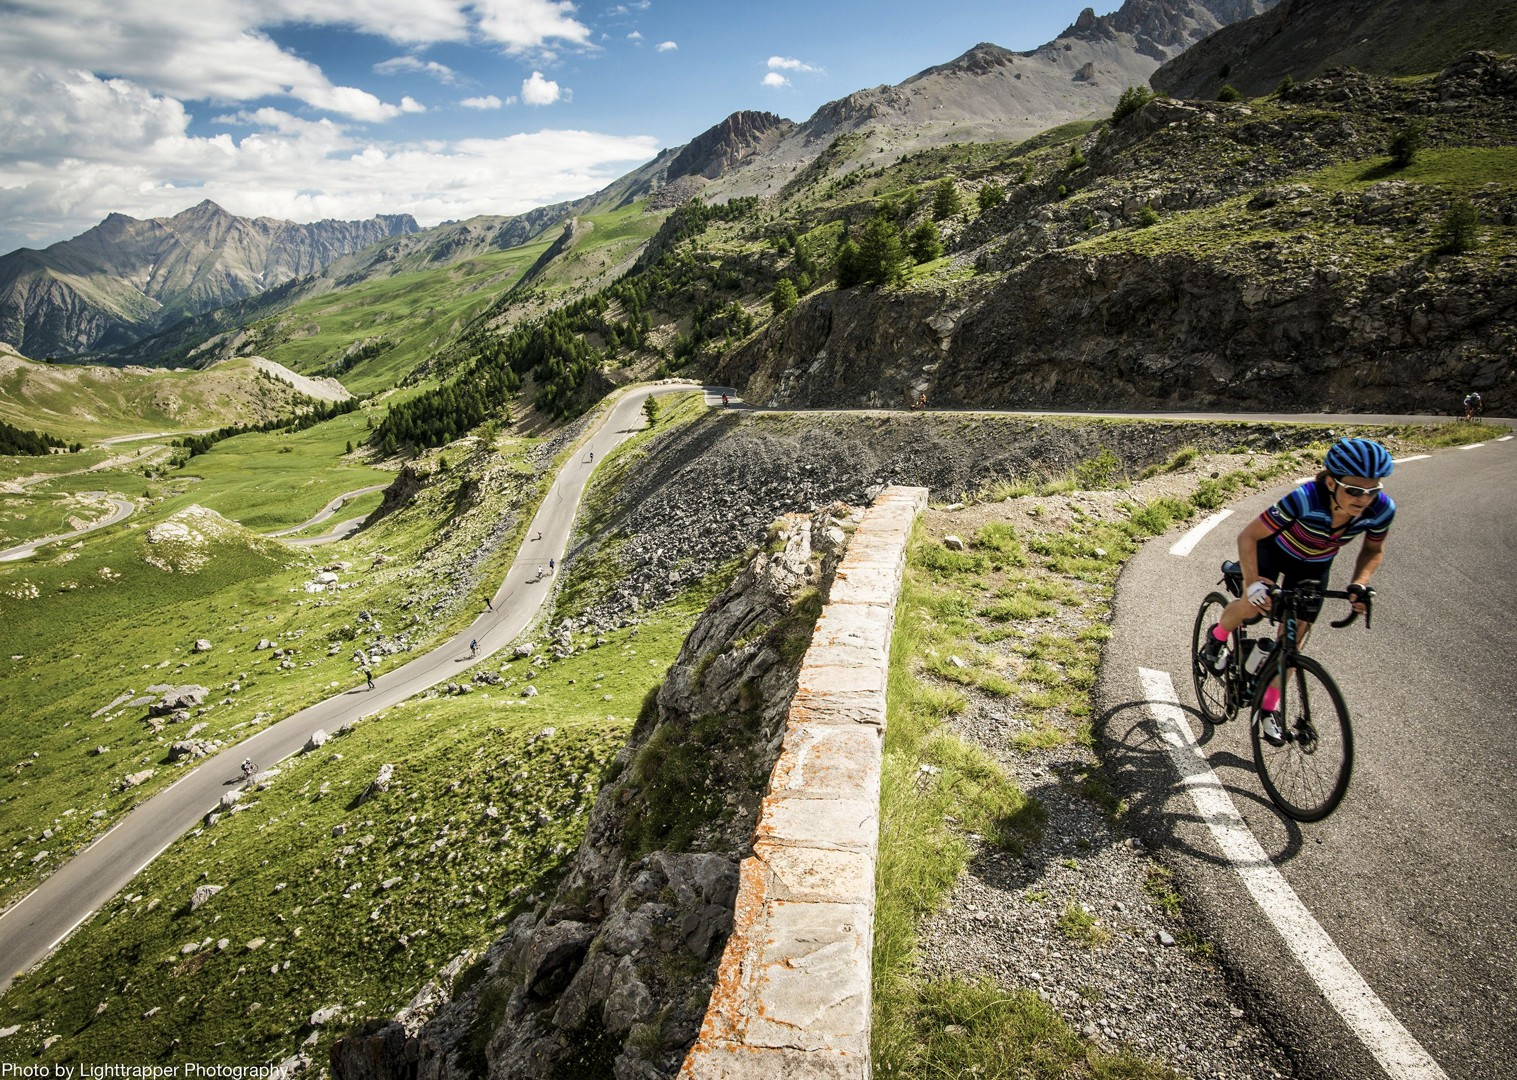 smooth-terrain-french-alps-group-road-cycling-holiday.jpg - France - Raid Alpine - Guided Road Cycling Holiday - Road Cycling